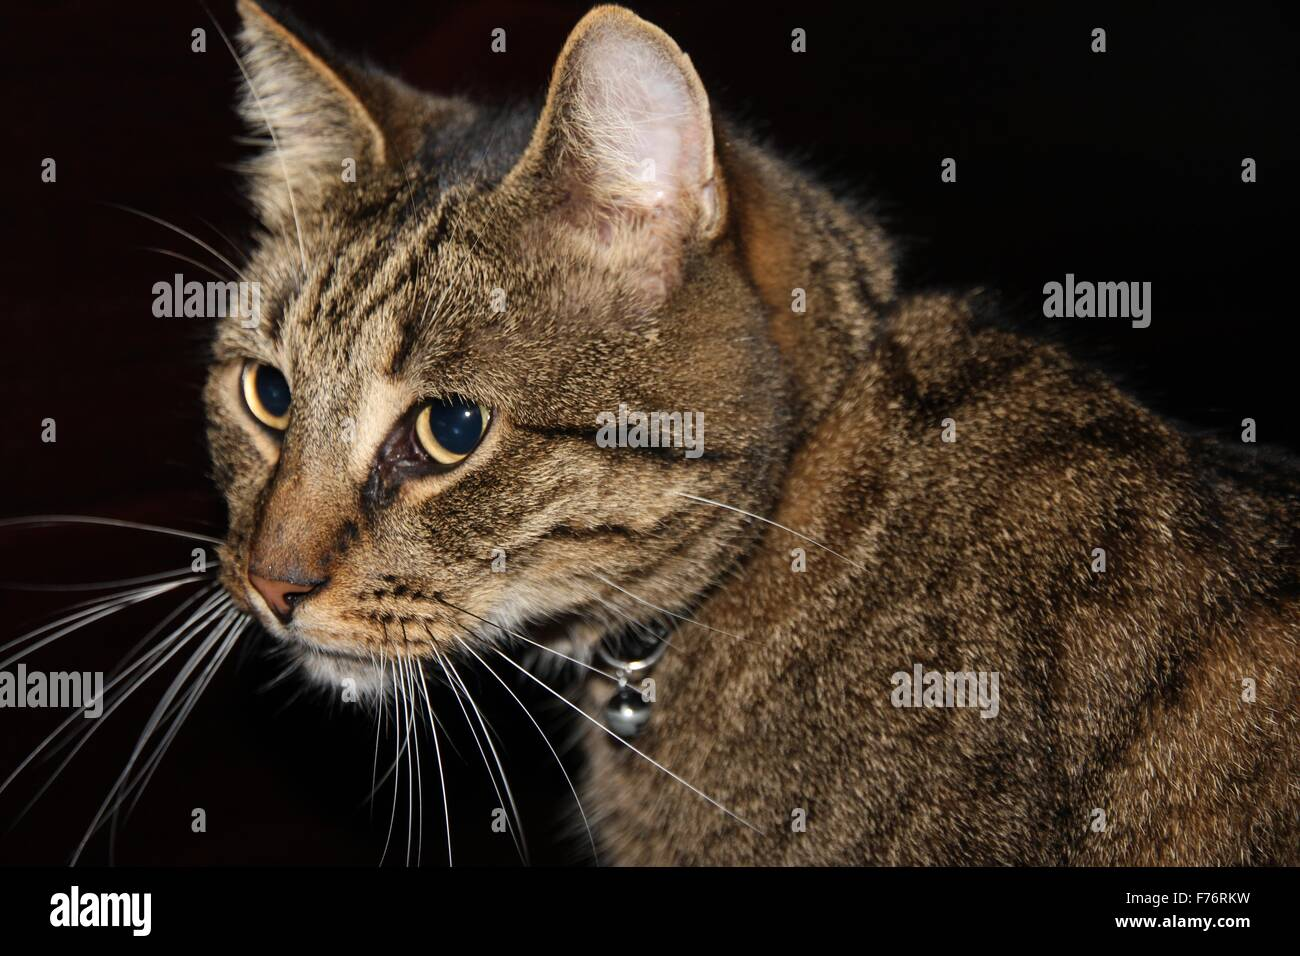 close up of a tabby cat on a black background - Stock Image